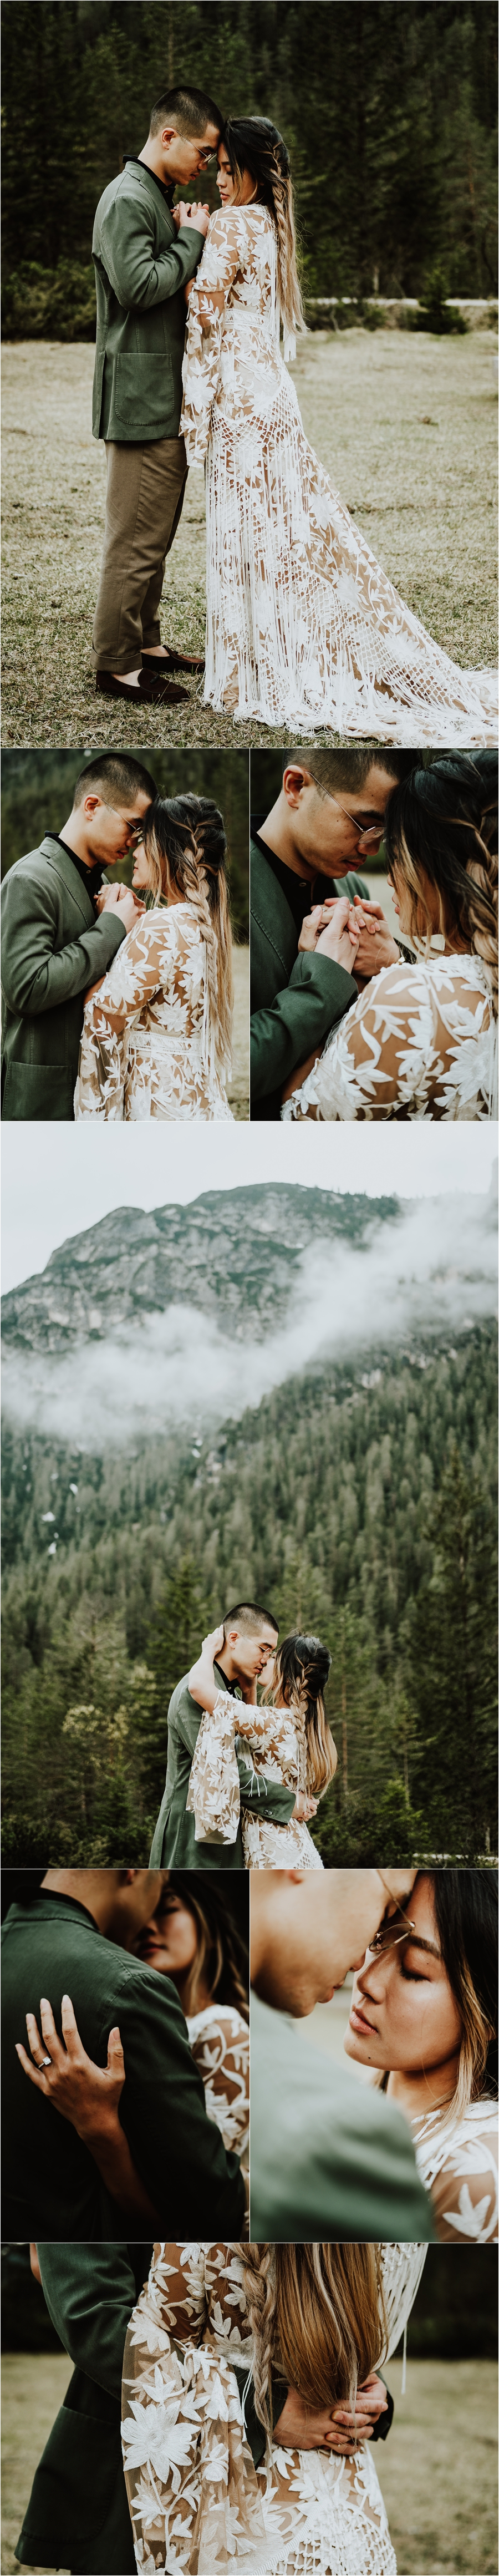 Moody mountains in the Dolomites for this adventure pre-wedding shoot by Wild Connections Photography